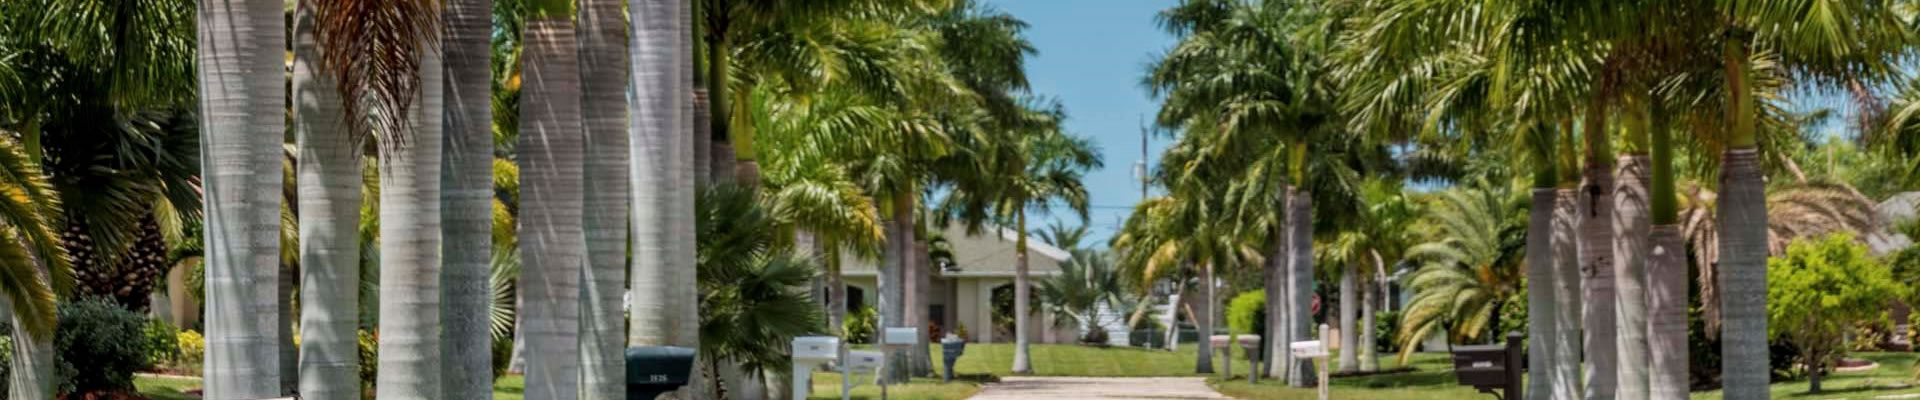 Sanford, FL tree removal services